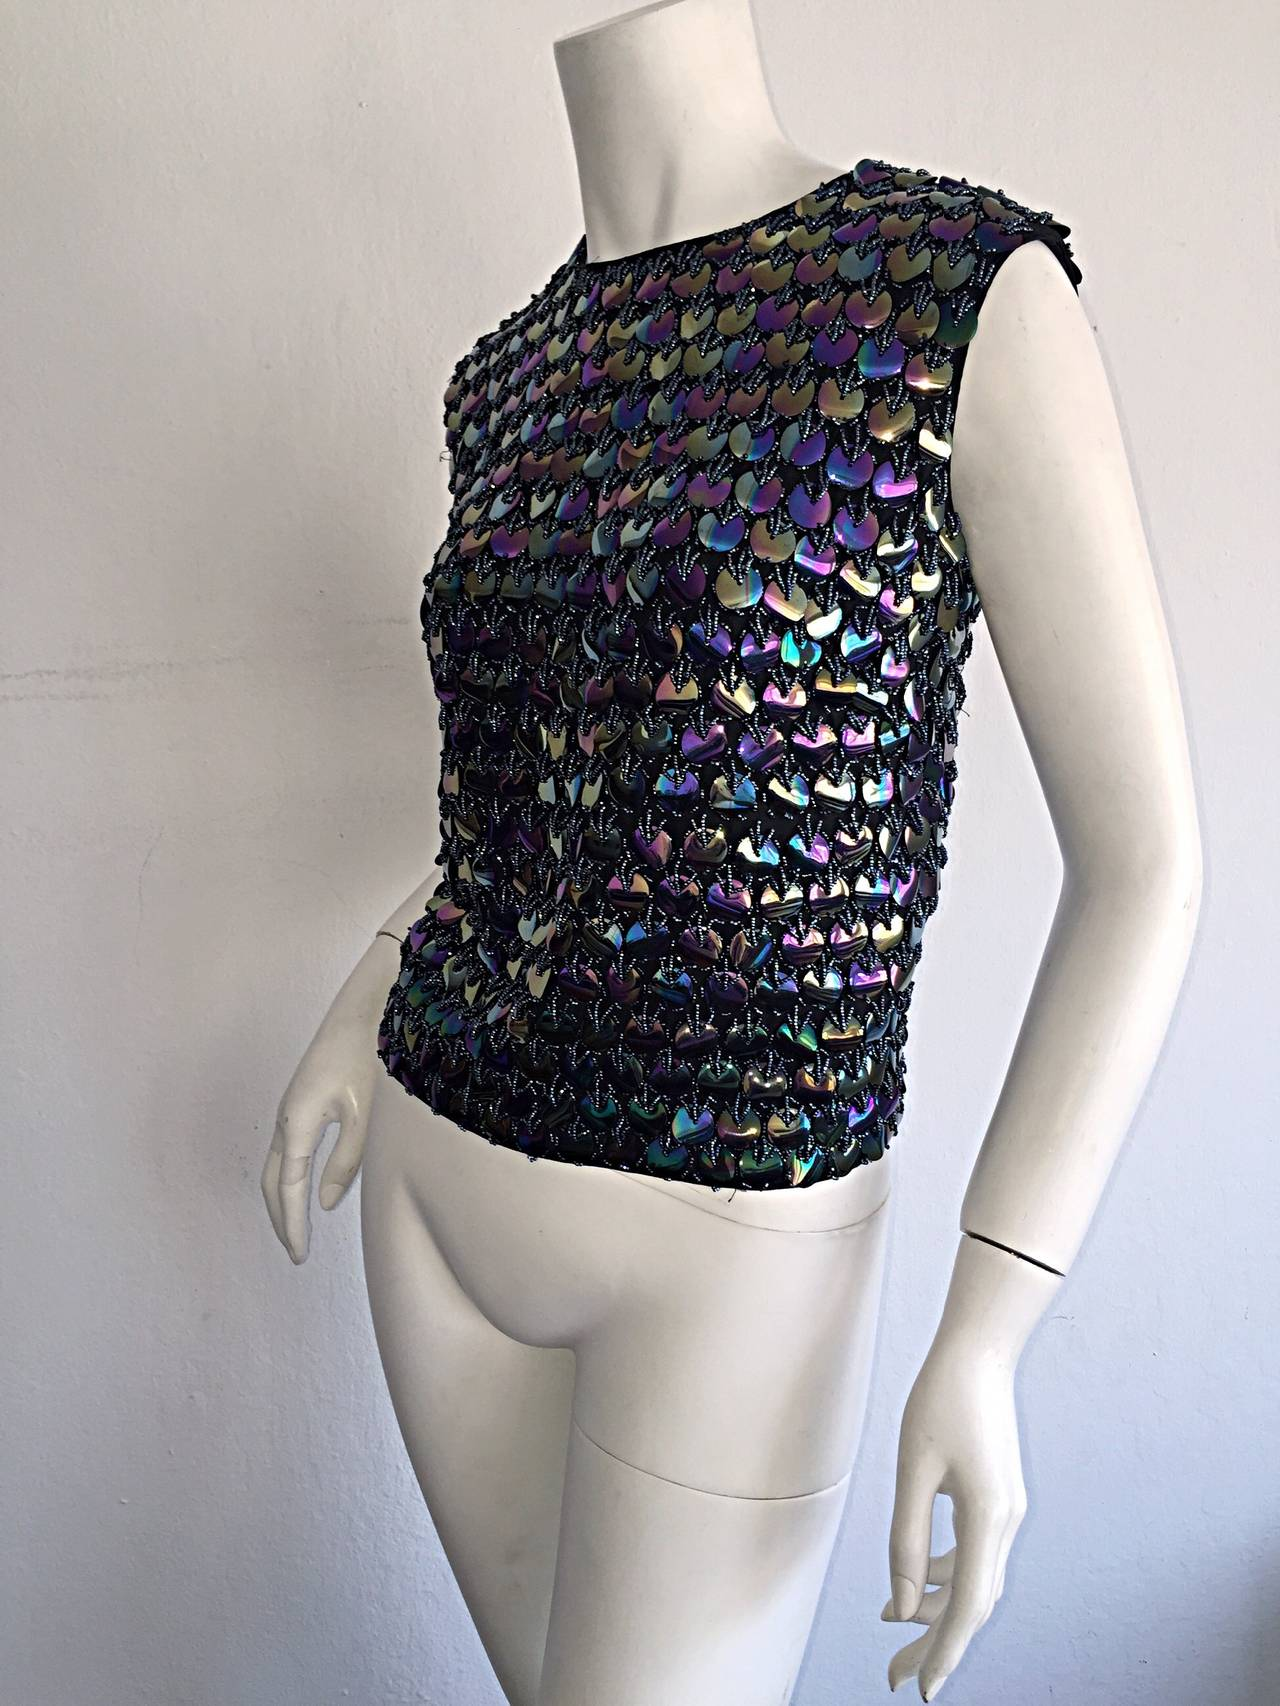 Black Fabulous 1950s Gene Shelly's Fully Beaded Iridescent Paillettes Silk Blouse Top For Sale